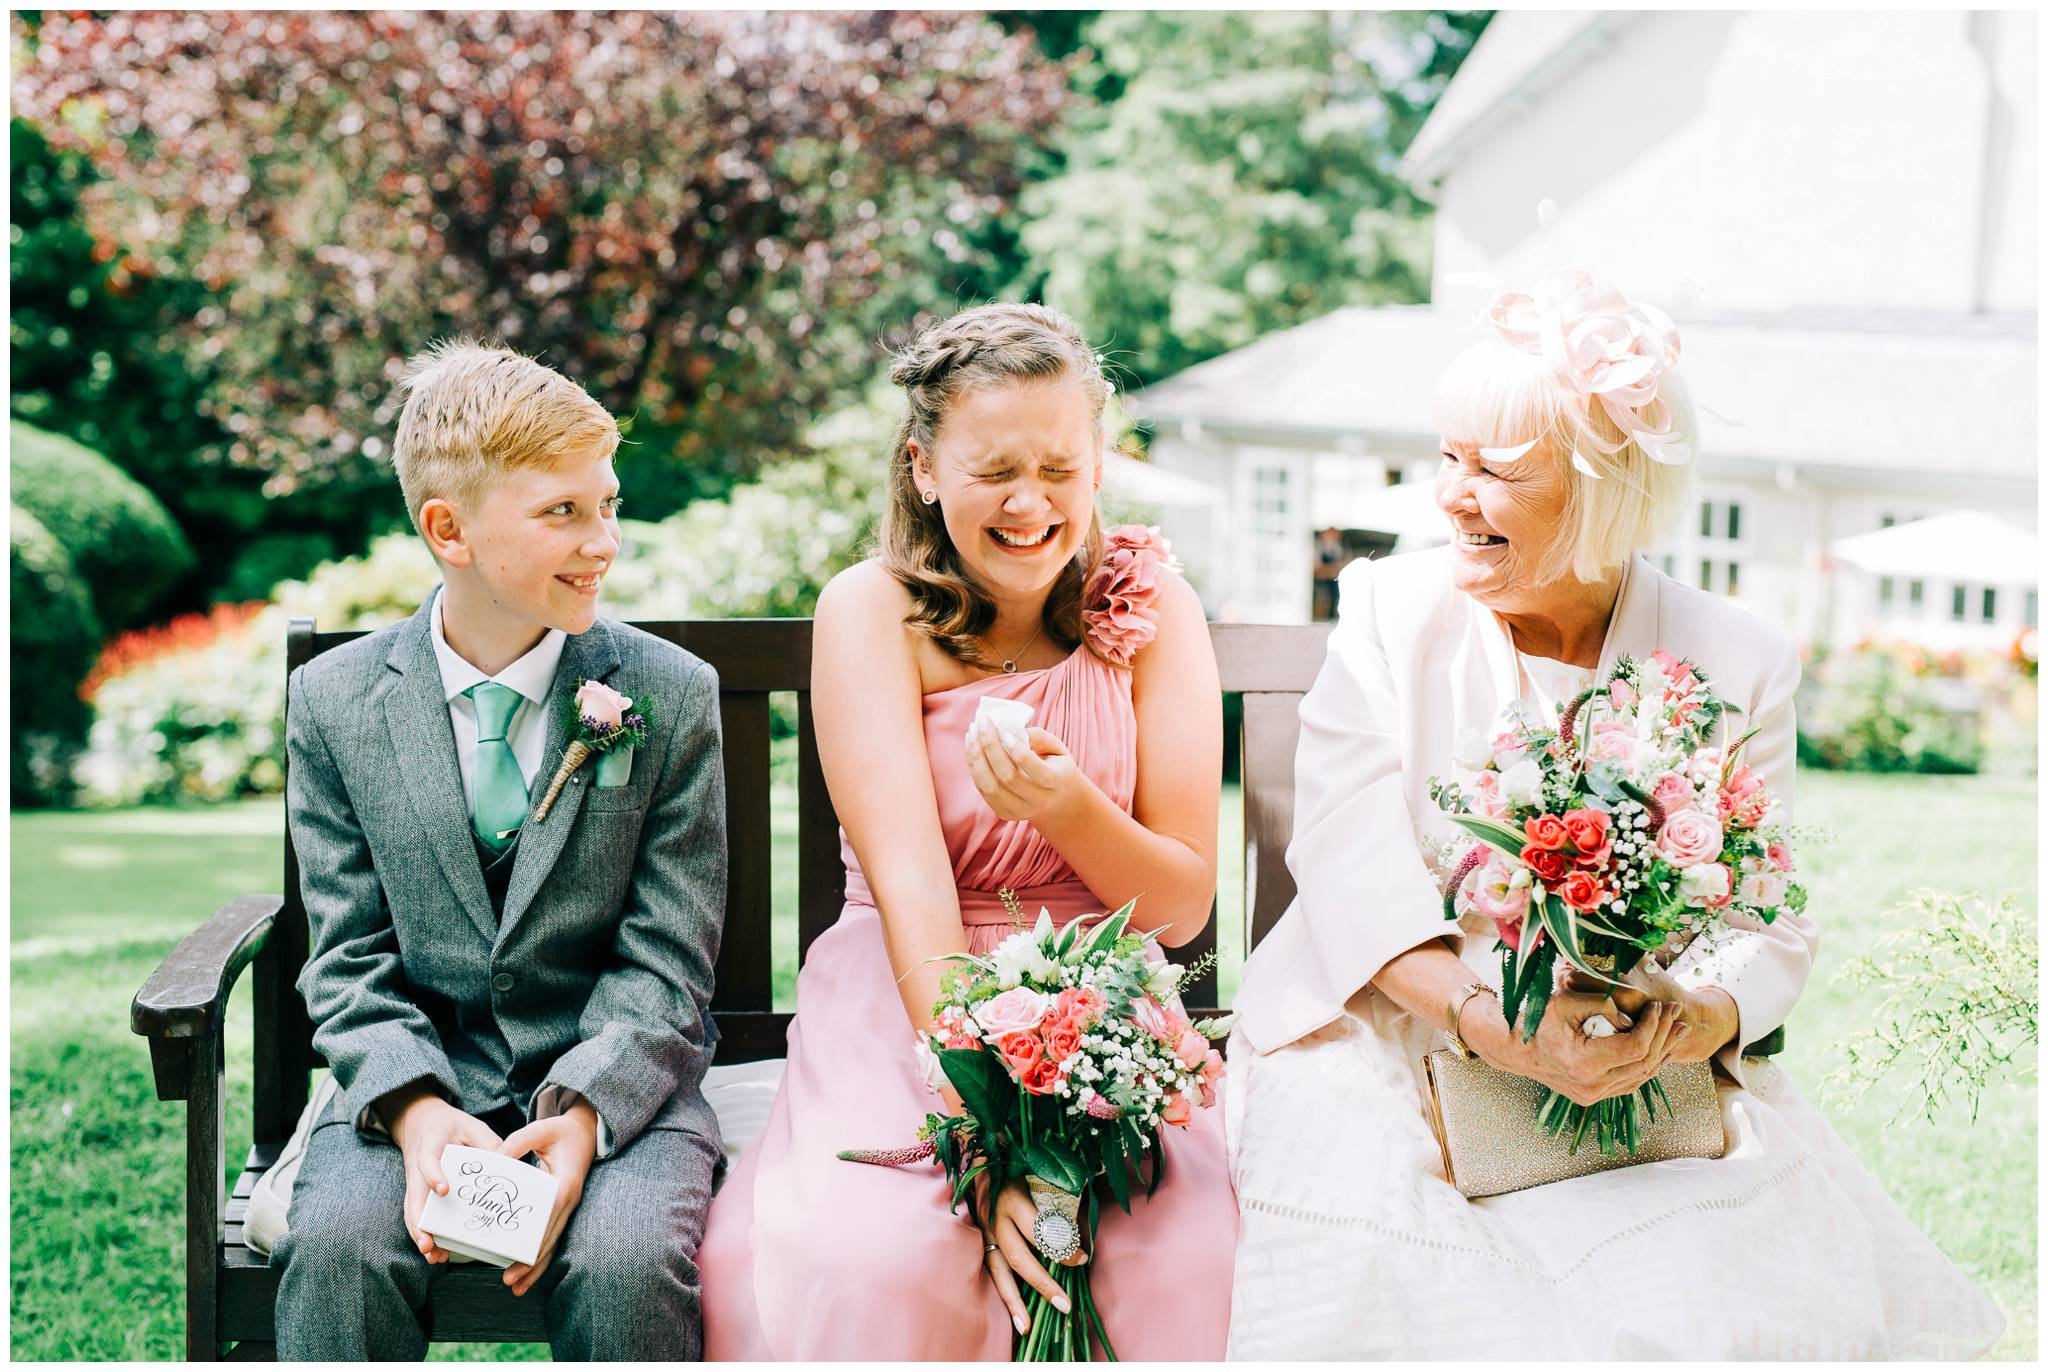 Natural wedding photography Manchester - Clare Robinson Photography_0187.jpg